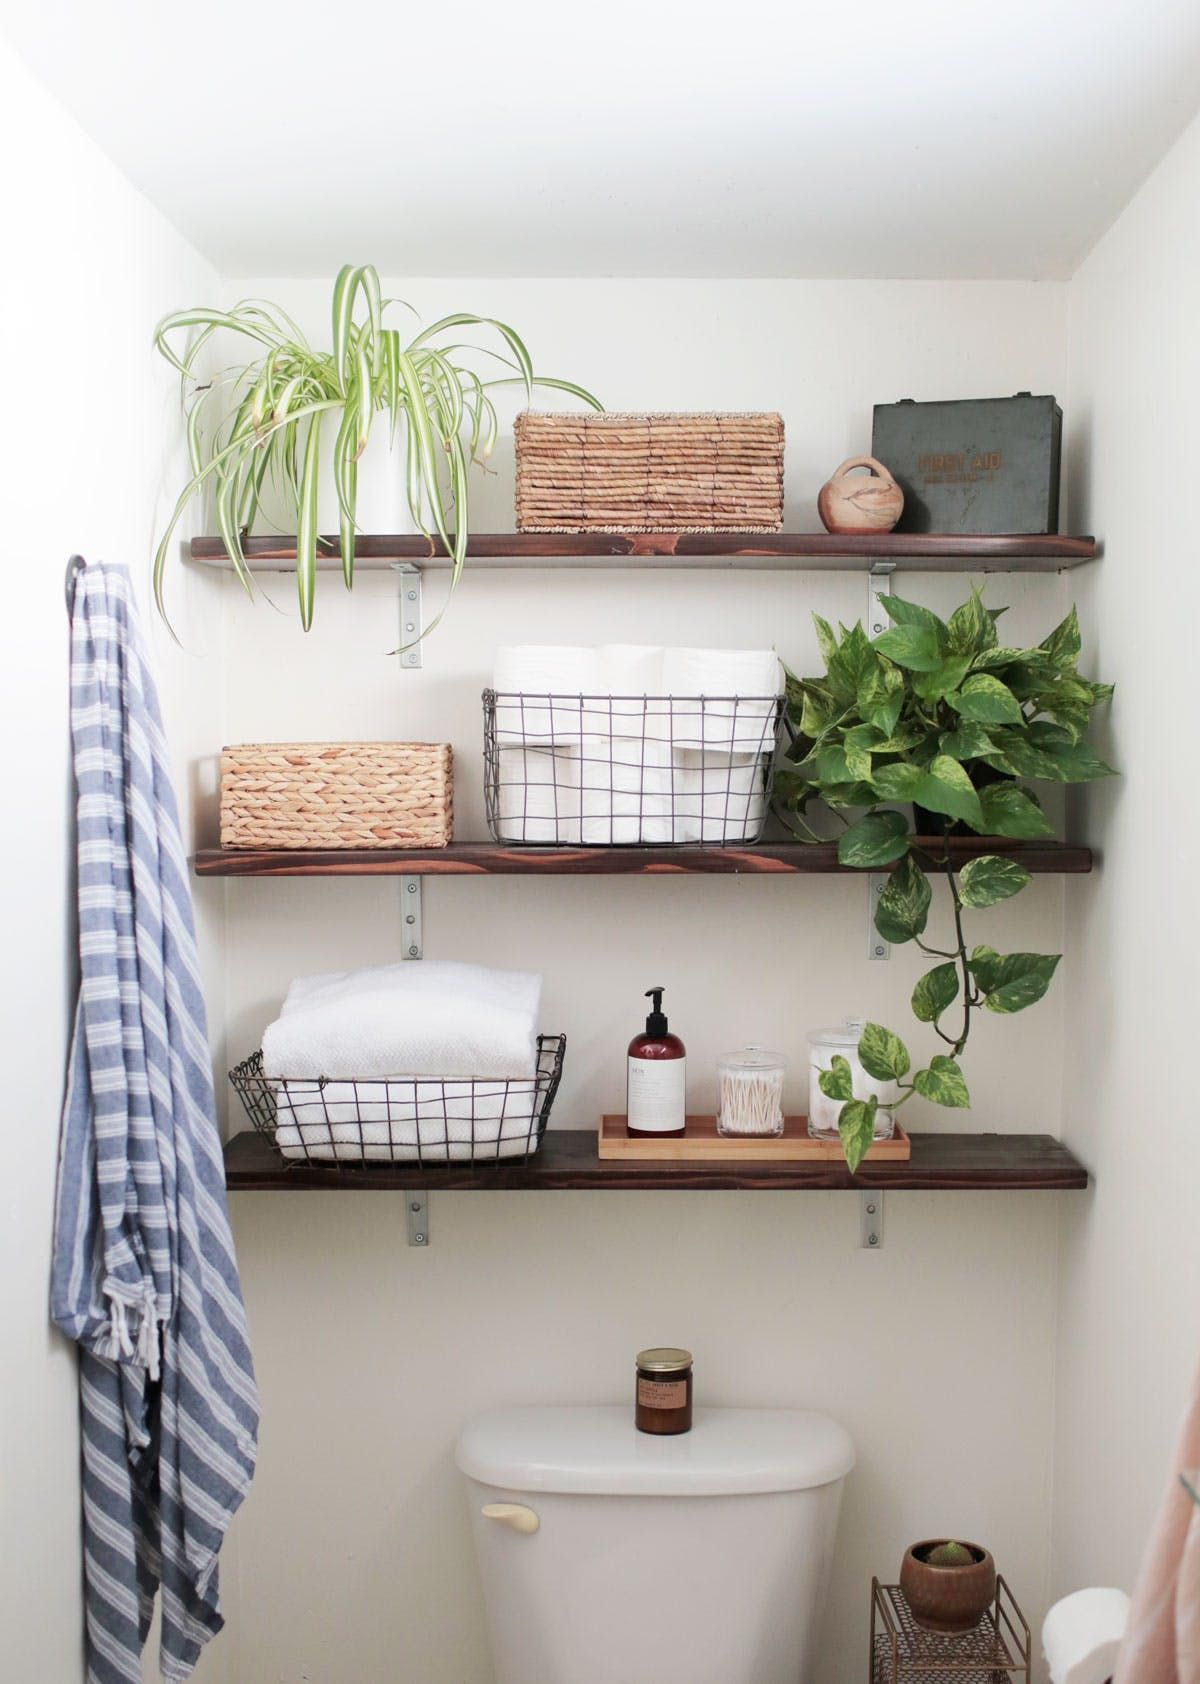 love the idea of natural wood shelving